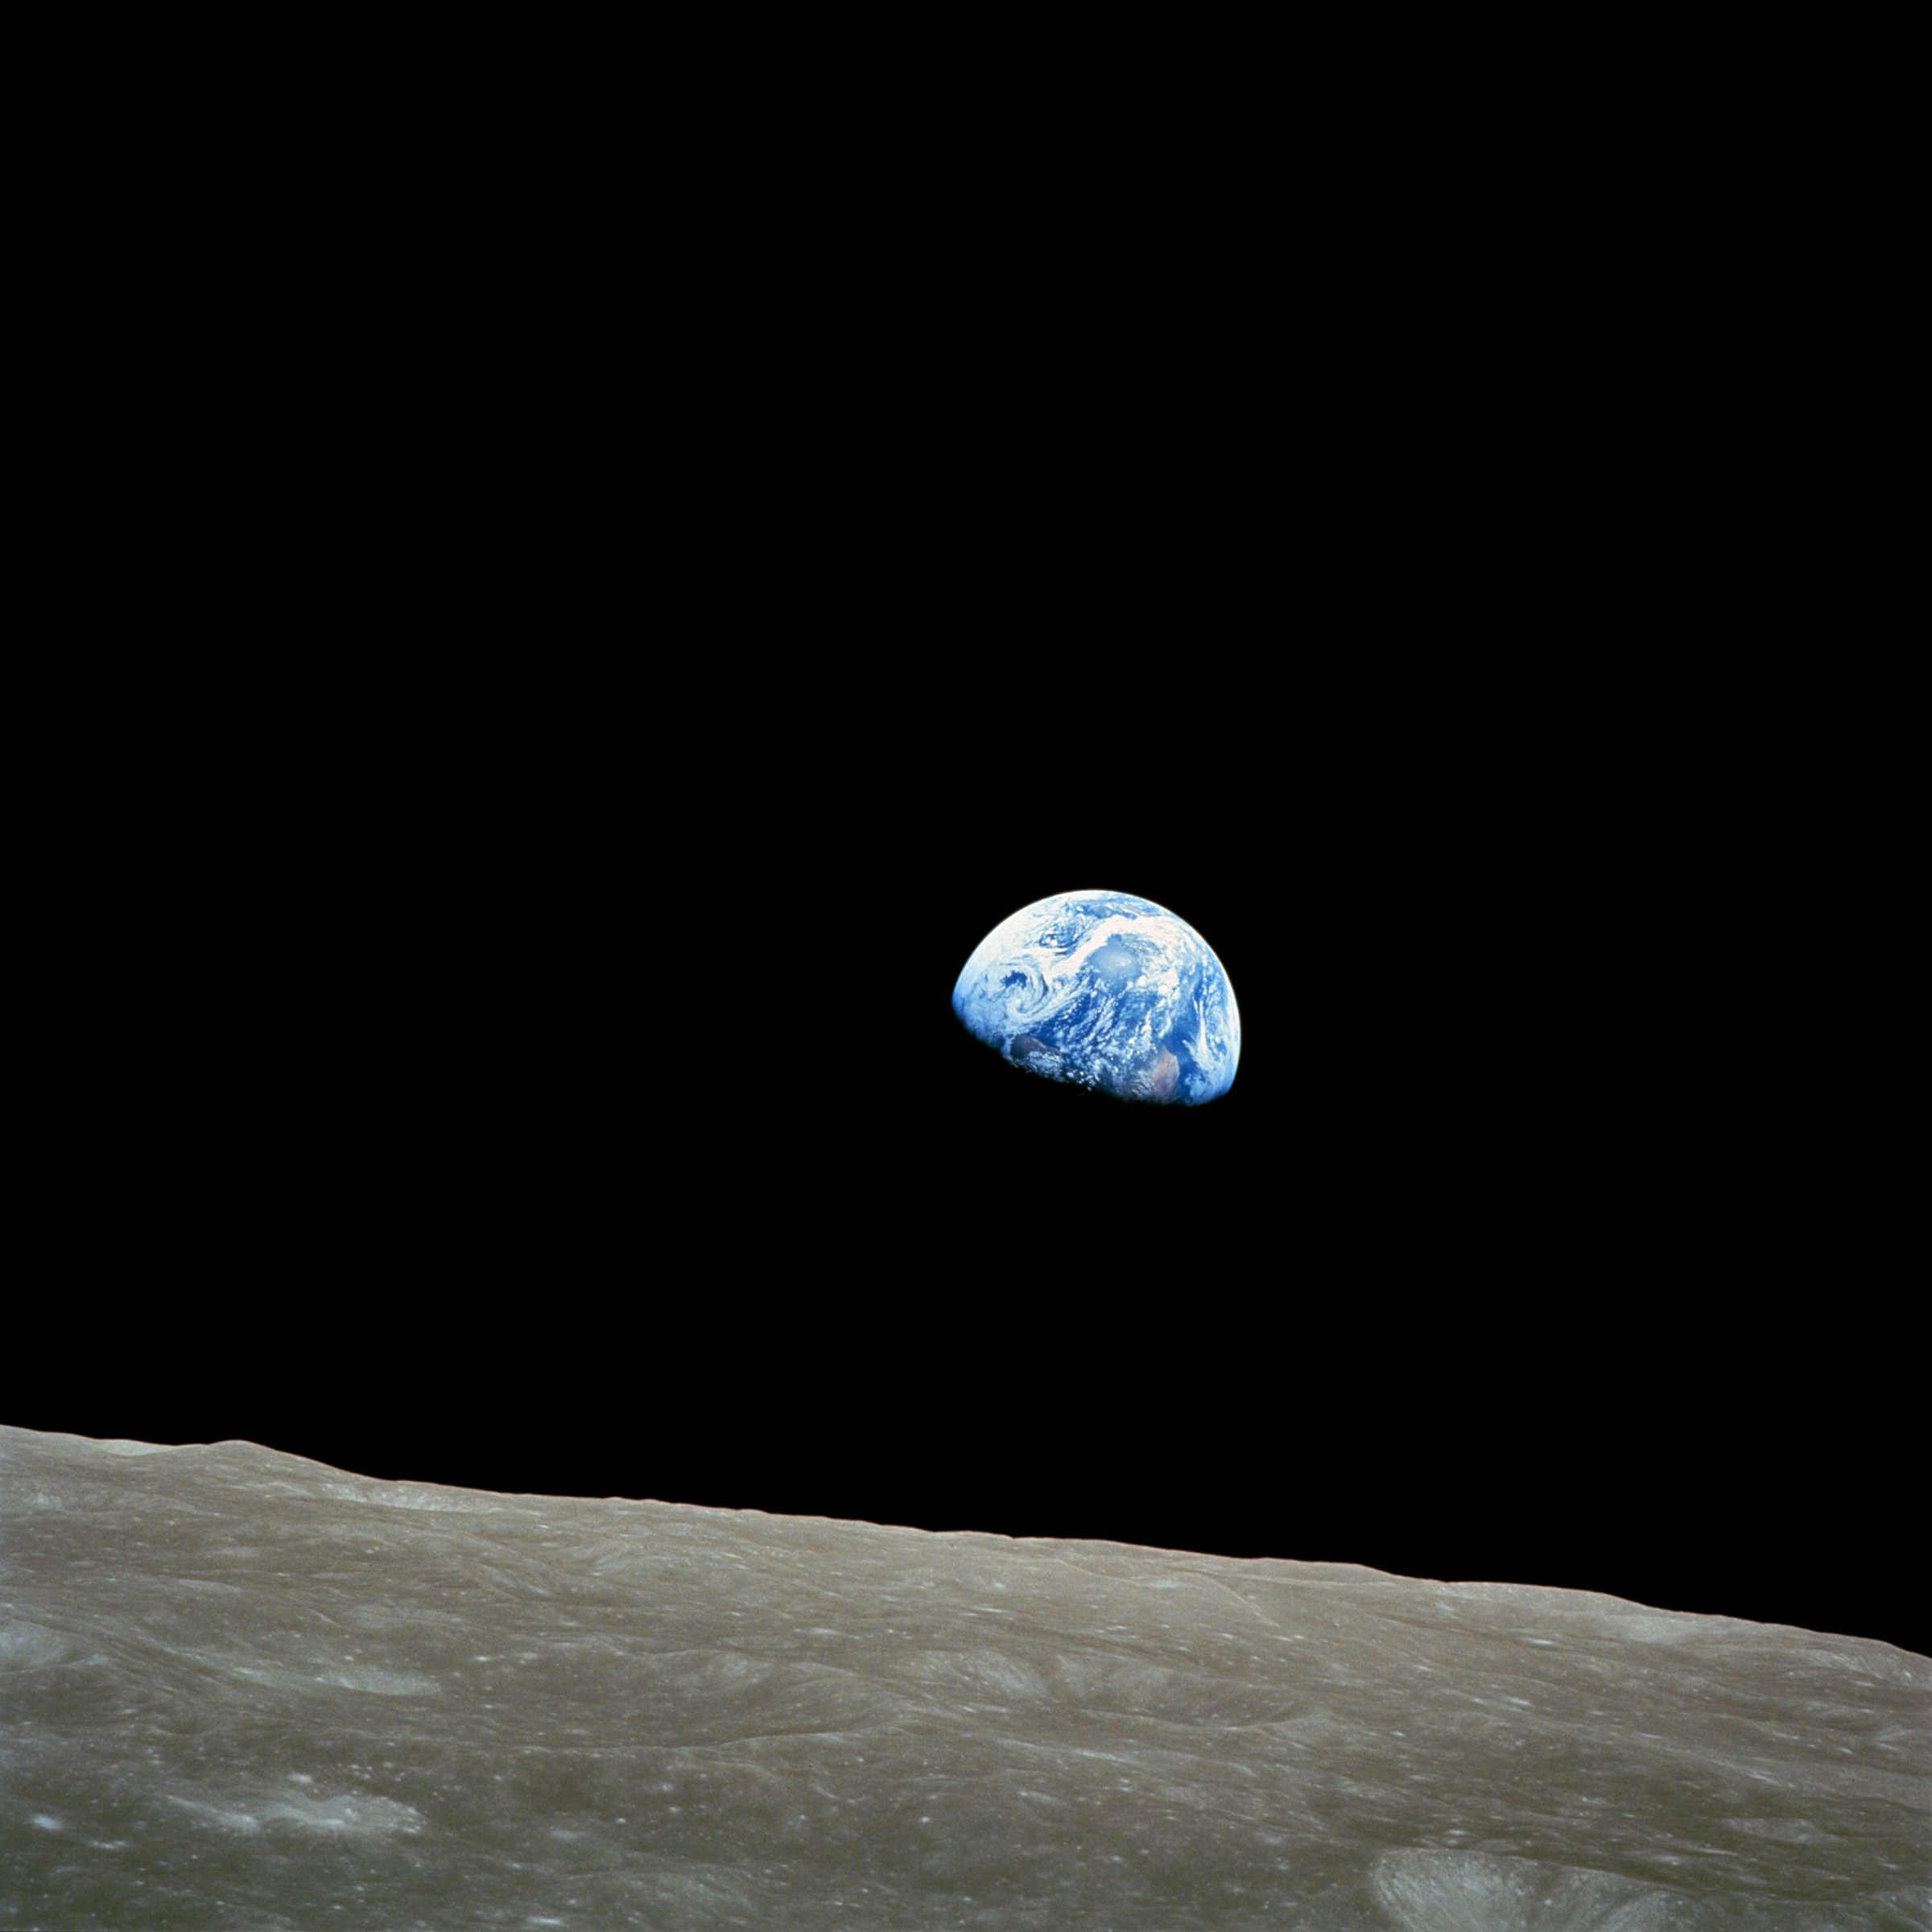 The Blue Marble rising, captured by NASA's Apollo 8 mission